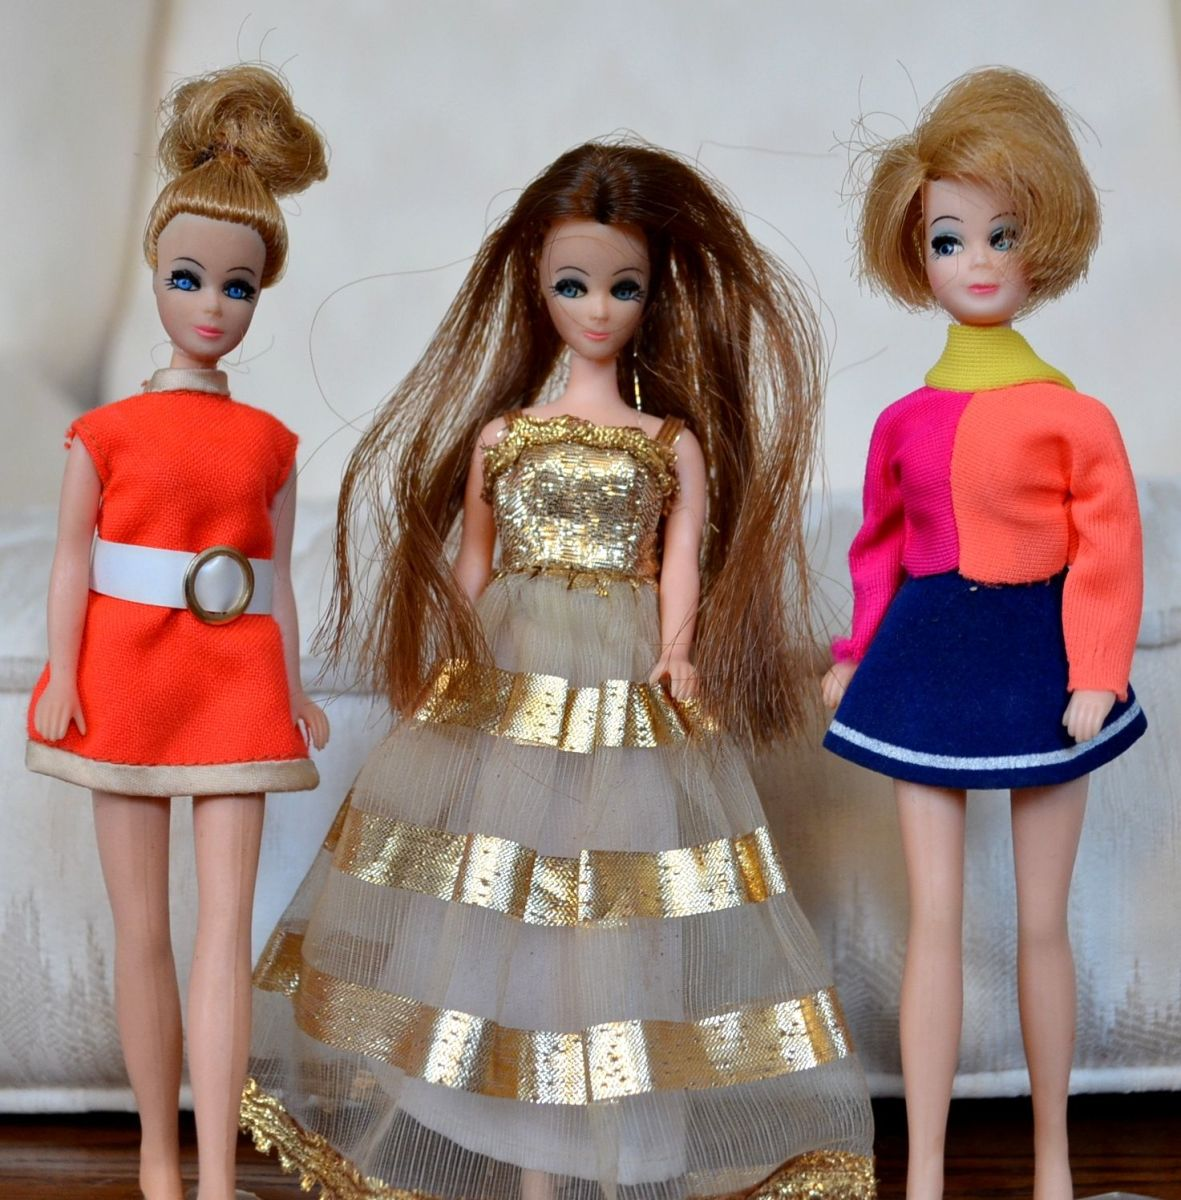 Dawn dolls by Topper.